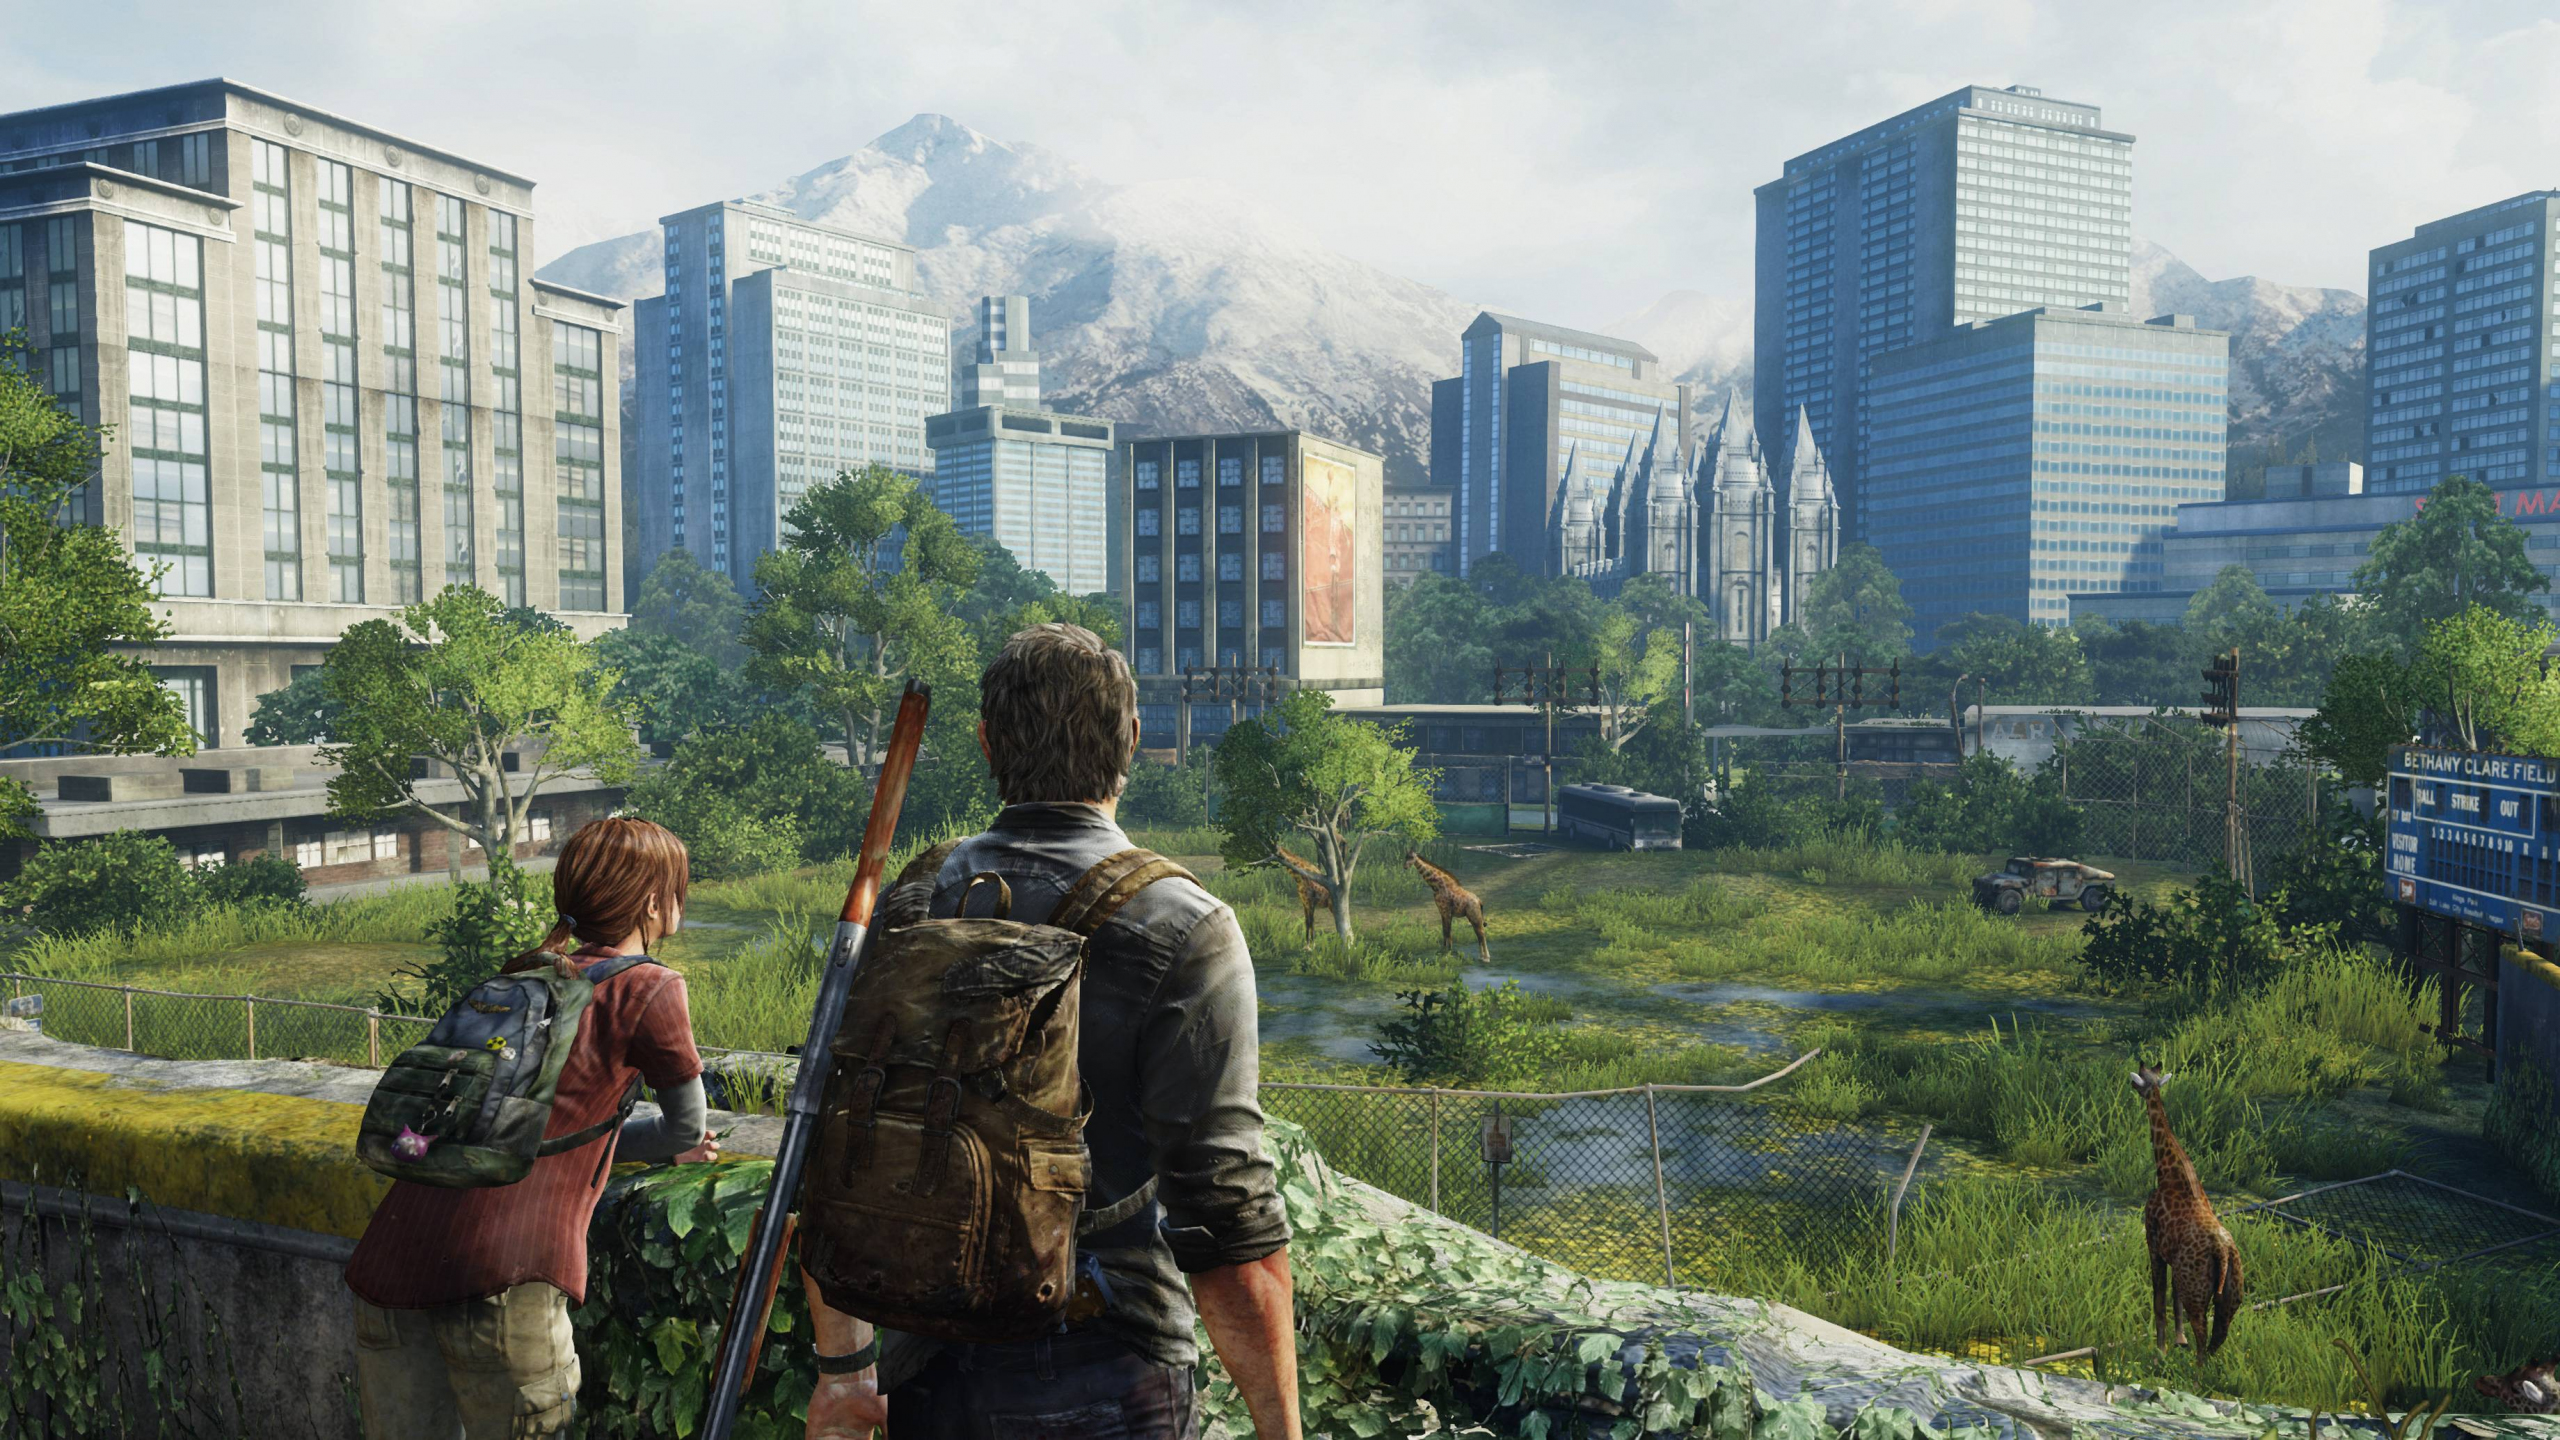 Download 2560x1440 Wallpaper The Last Of Us Remastered Ps4 Video